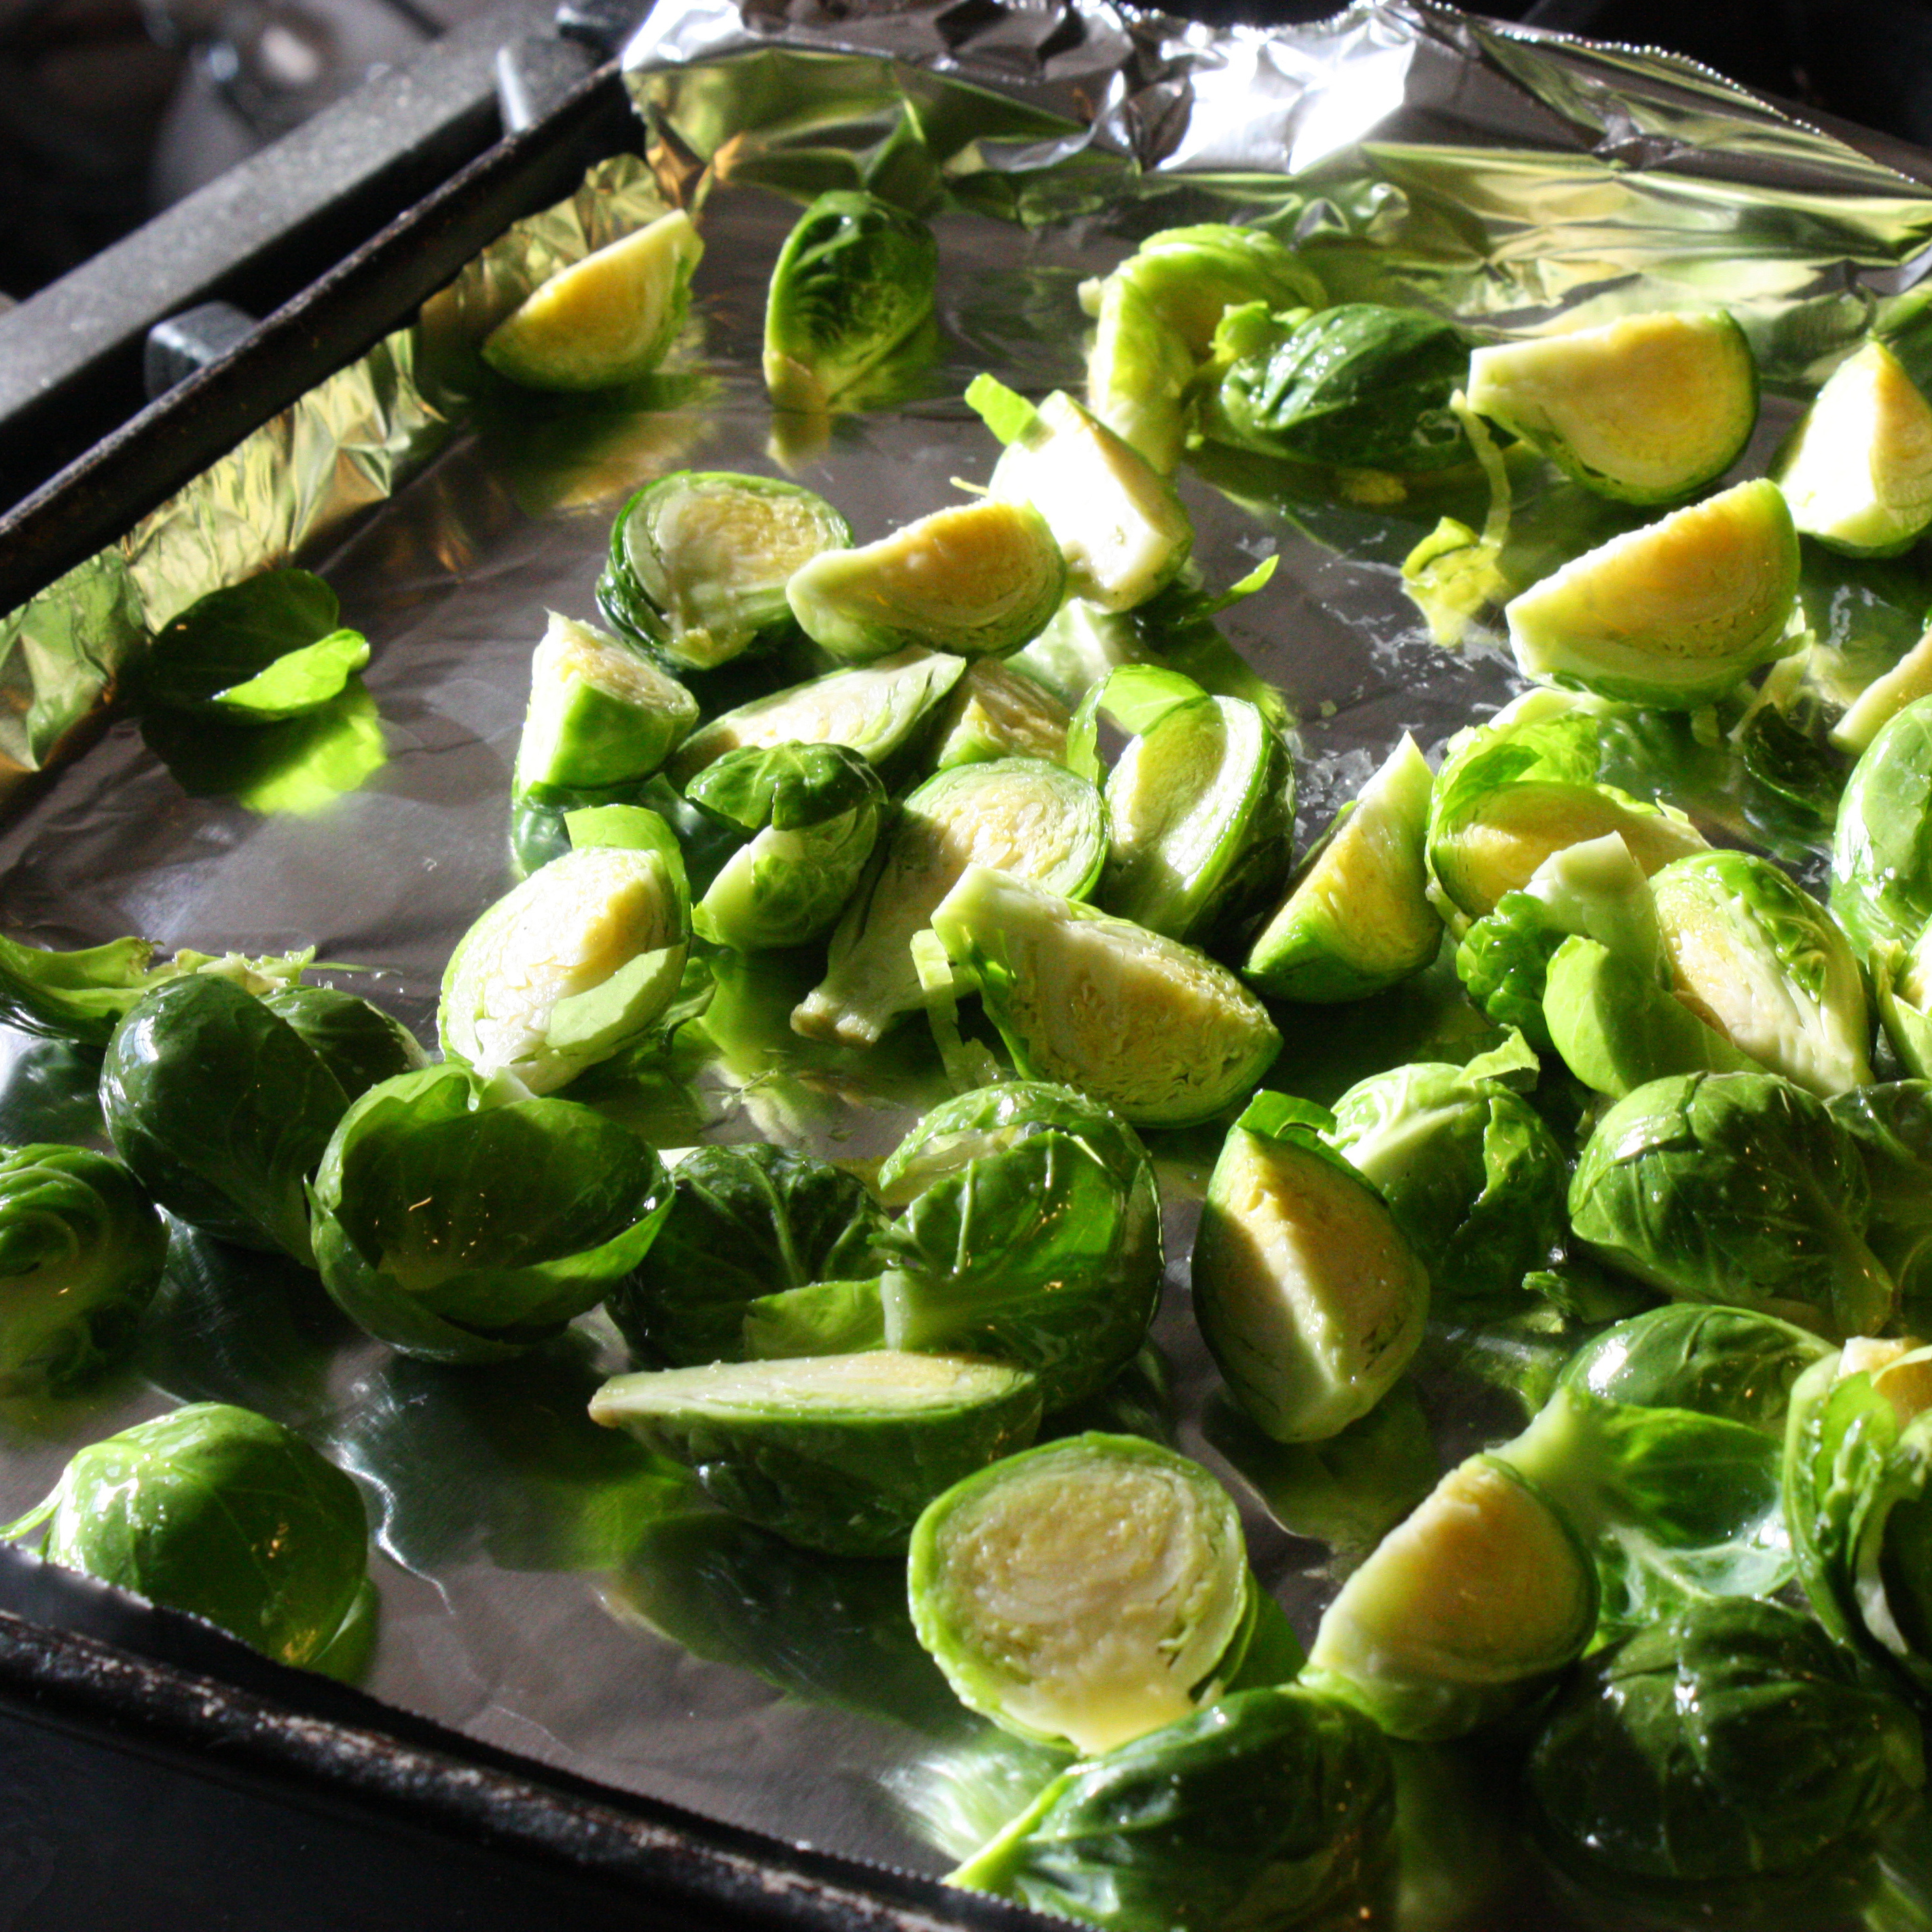 Brussels sprouts sliced for roasting